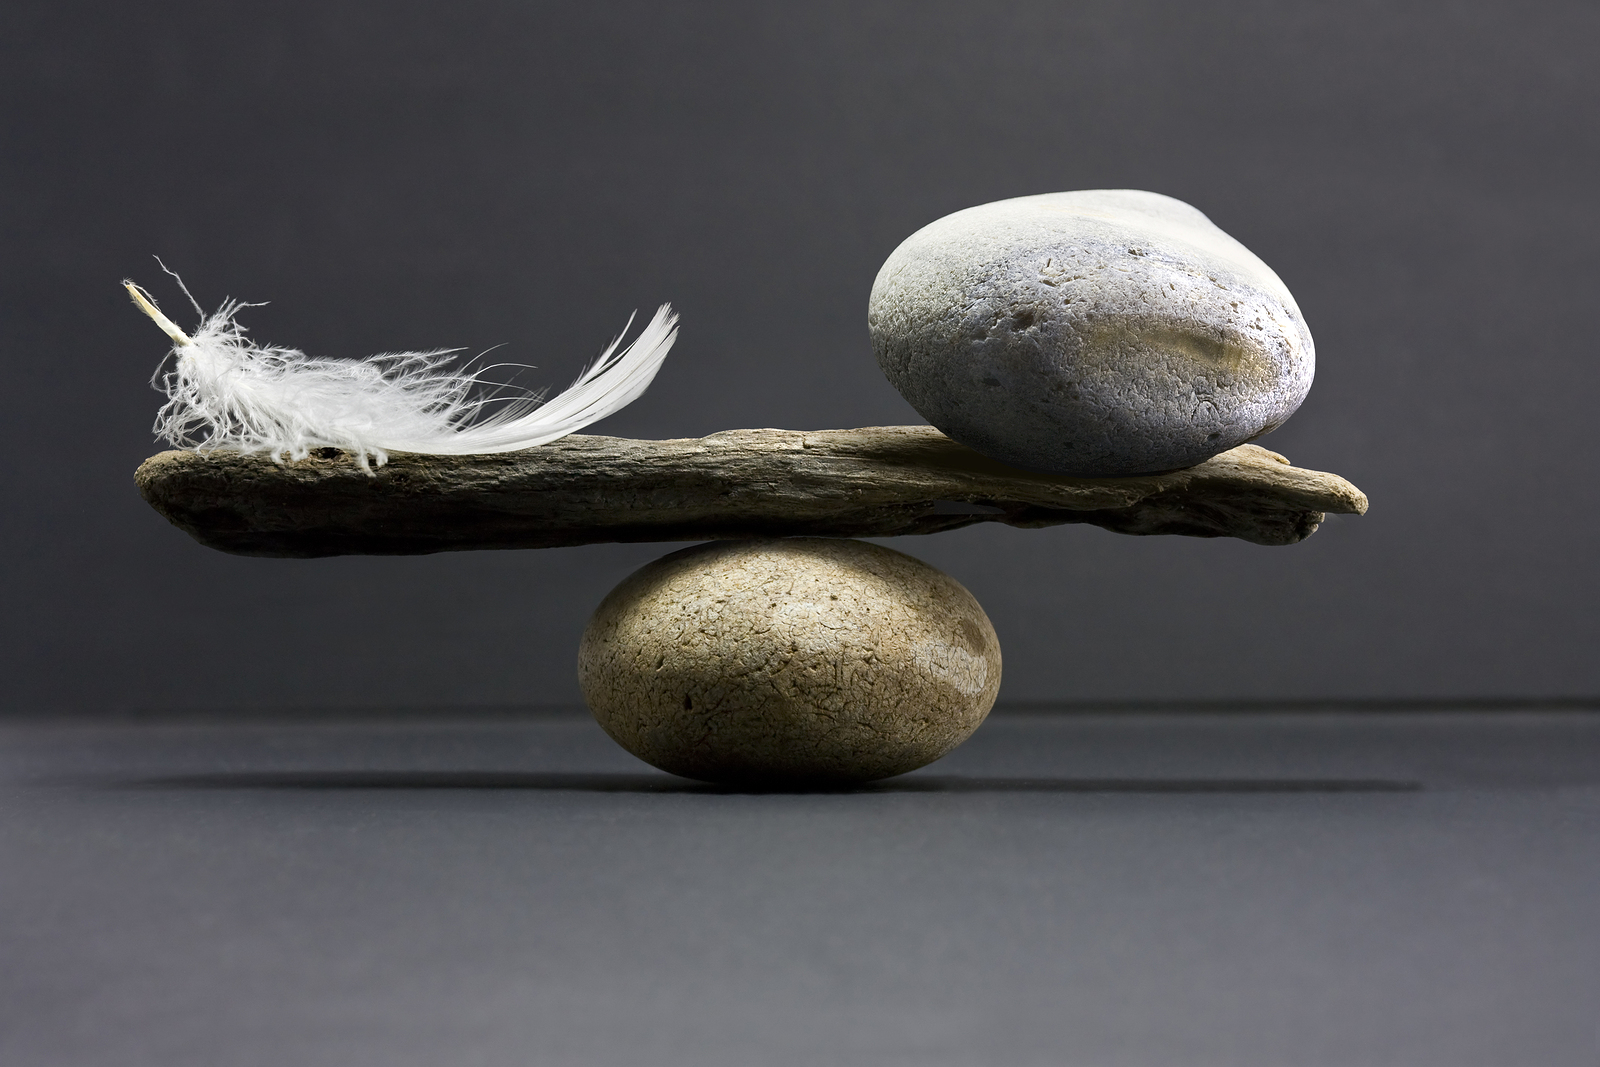 Steps To Create Right Balance Between Empathy And Action